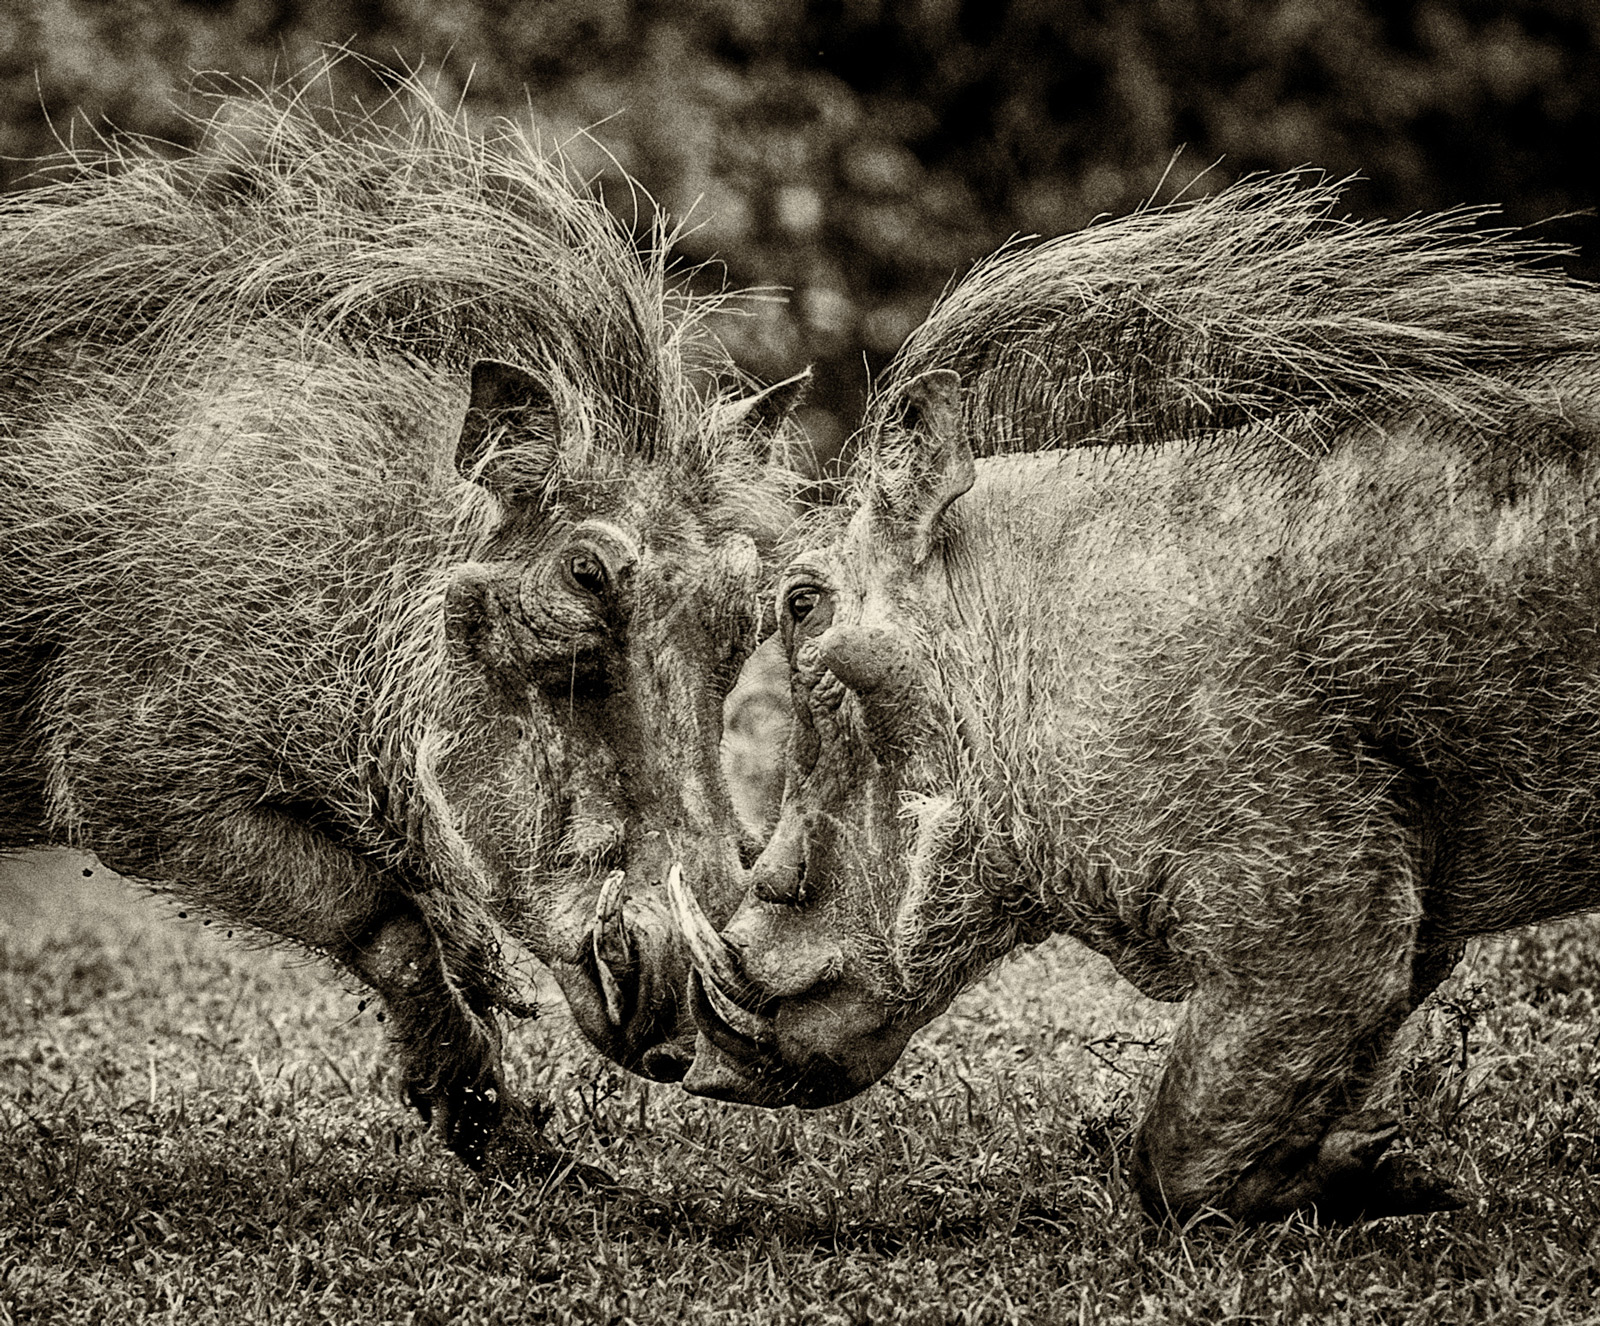 Warthogs pick a fight in the Maasai Mara National Reserve, Kenya ©Gillian Lloyd